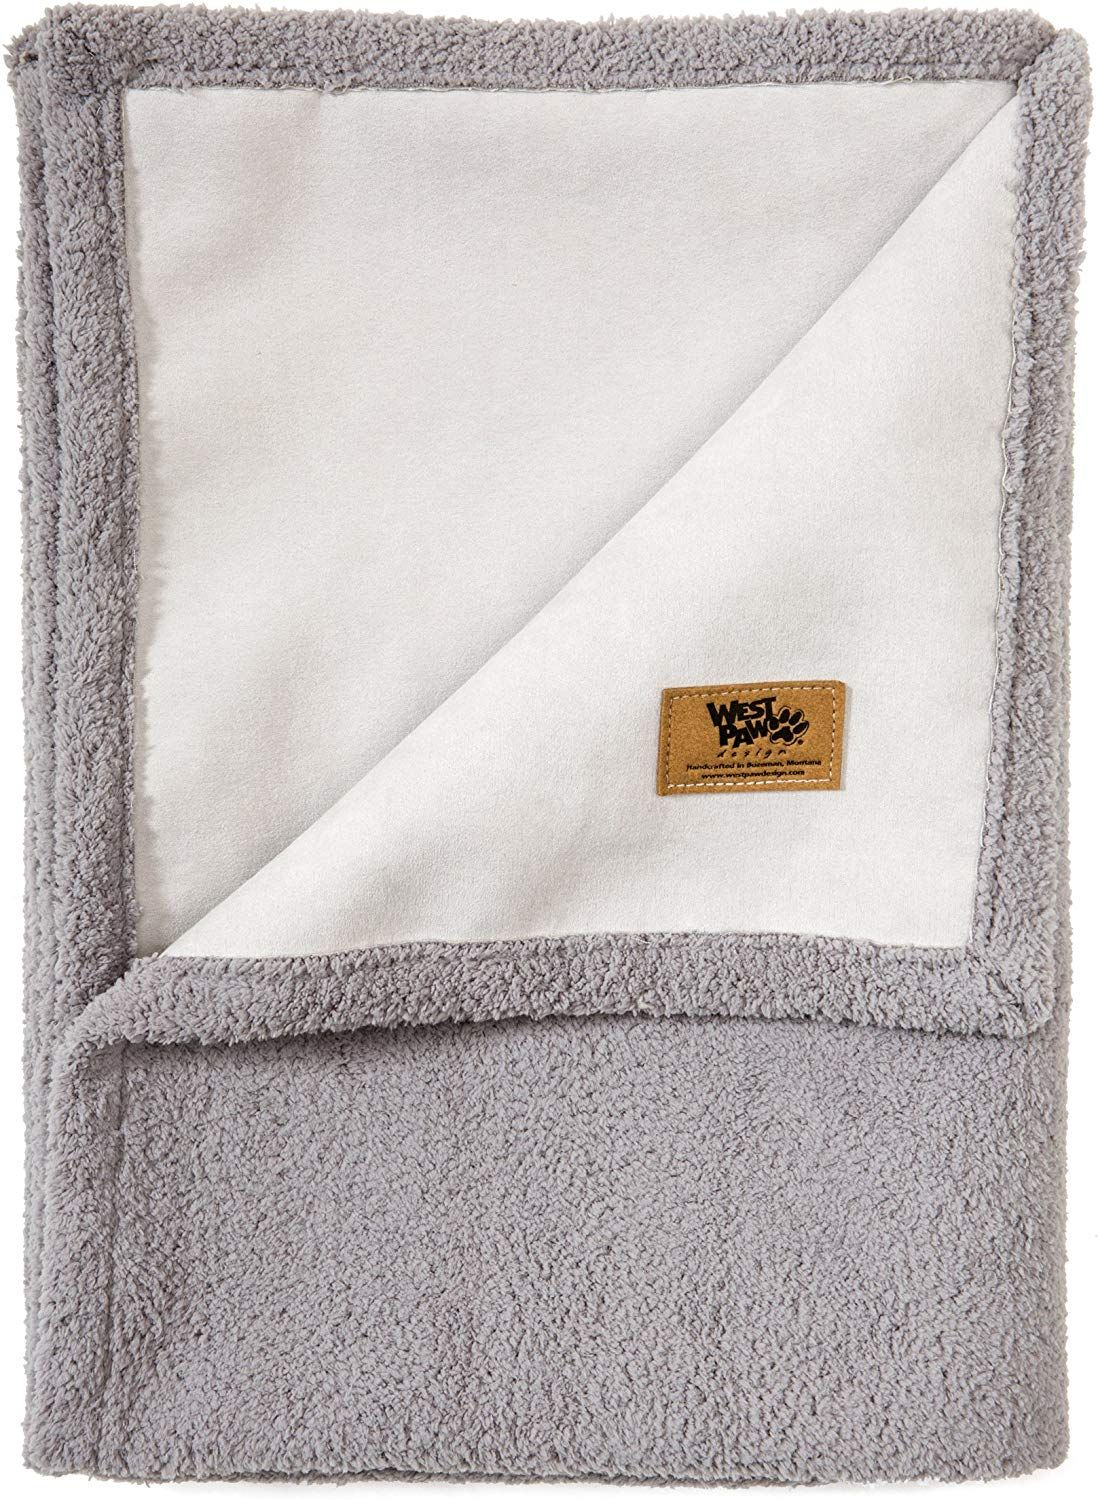 West Paw Big Sky Dog Blanket and Throw, Faux Suede/Silky